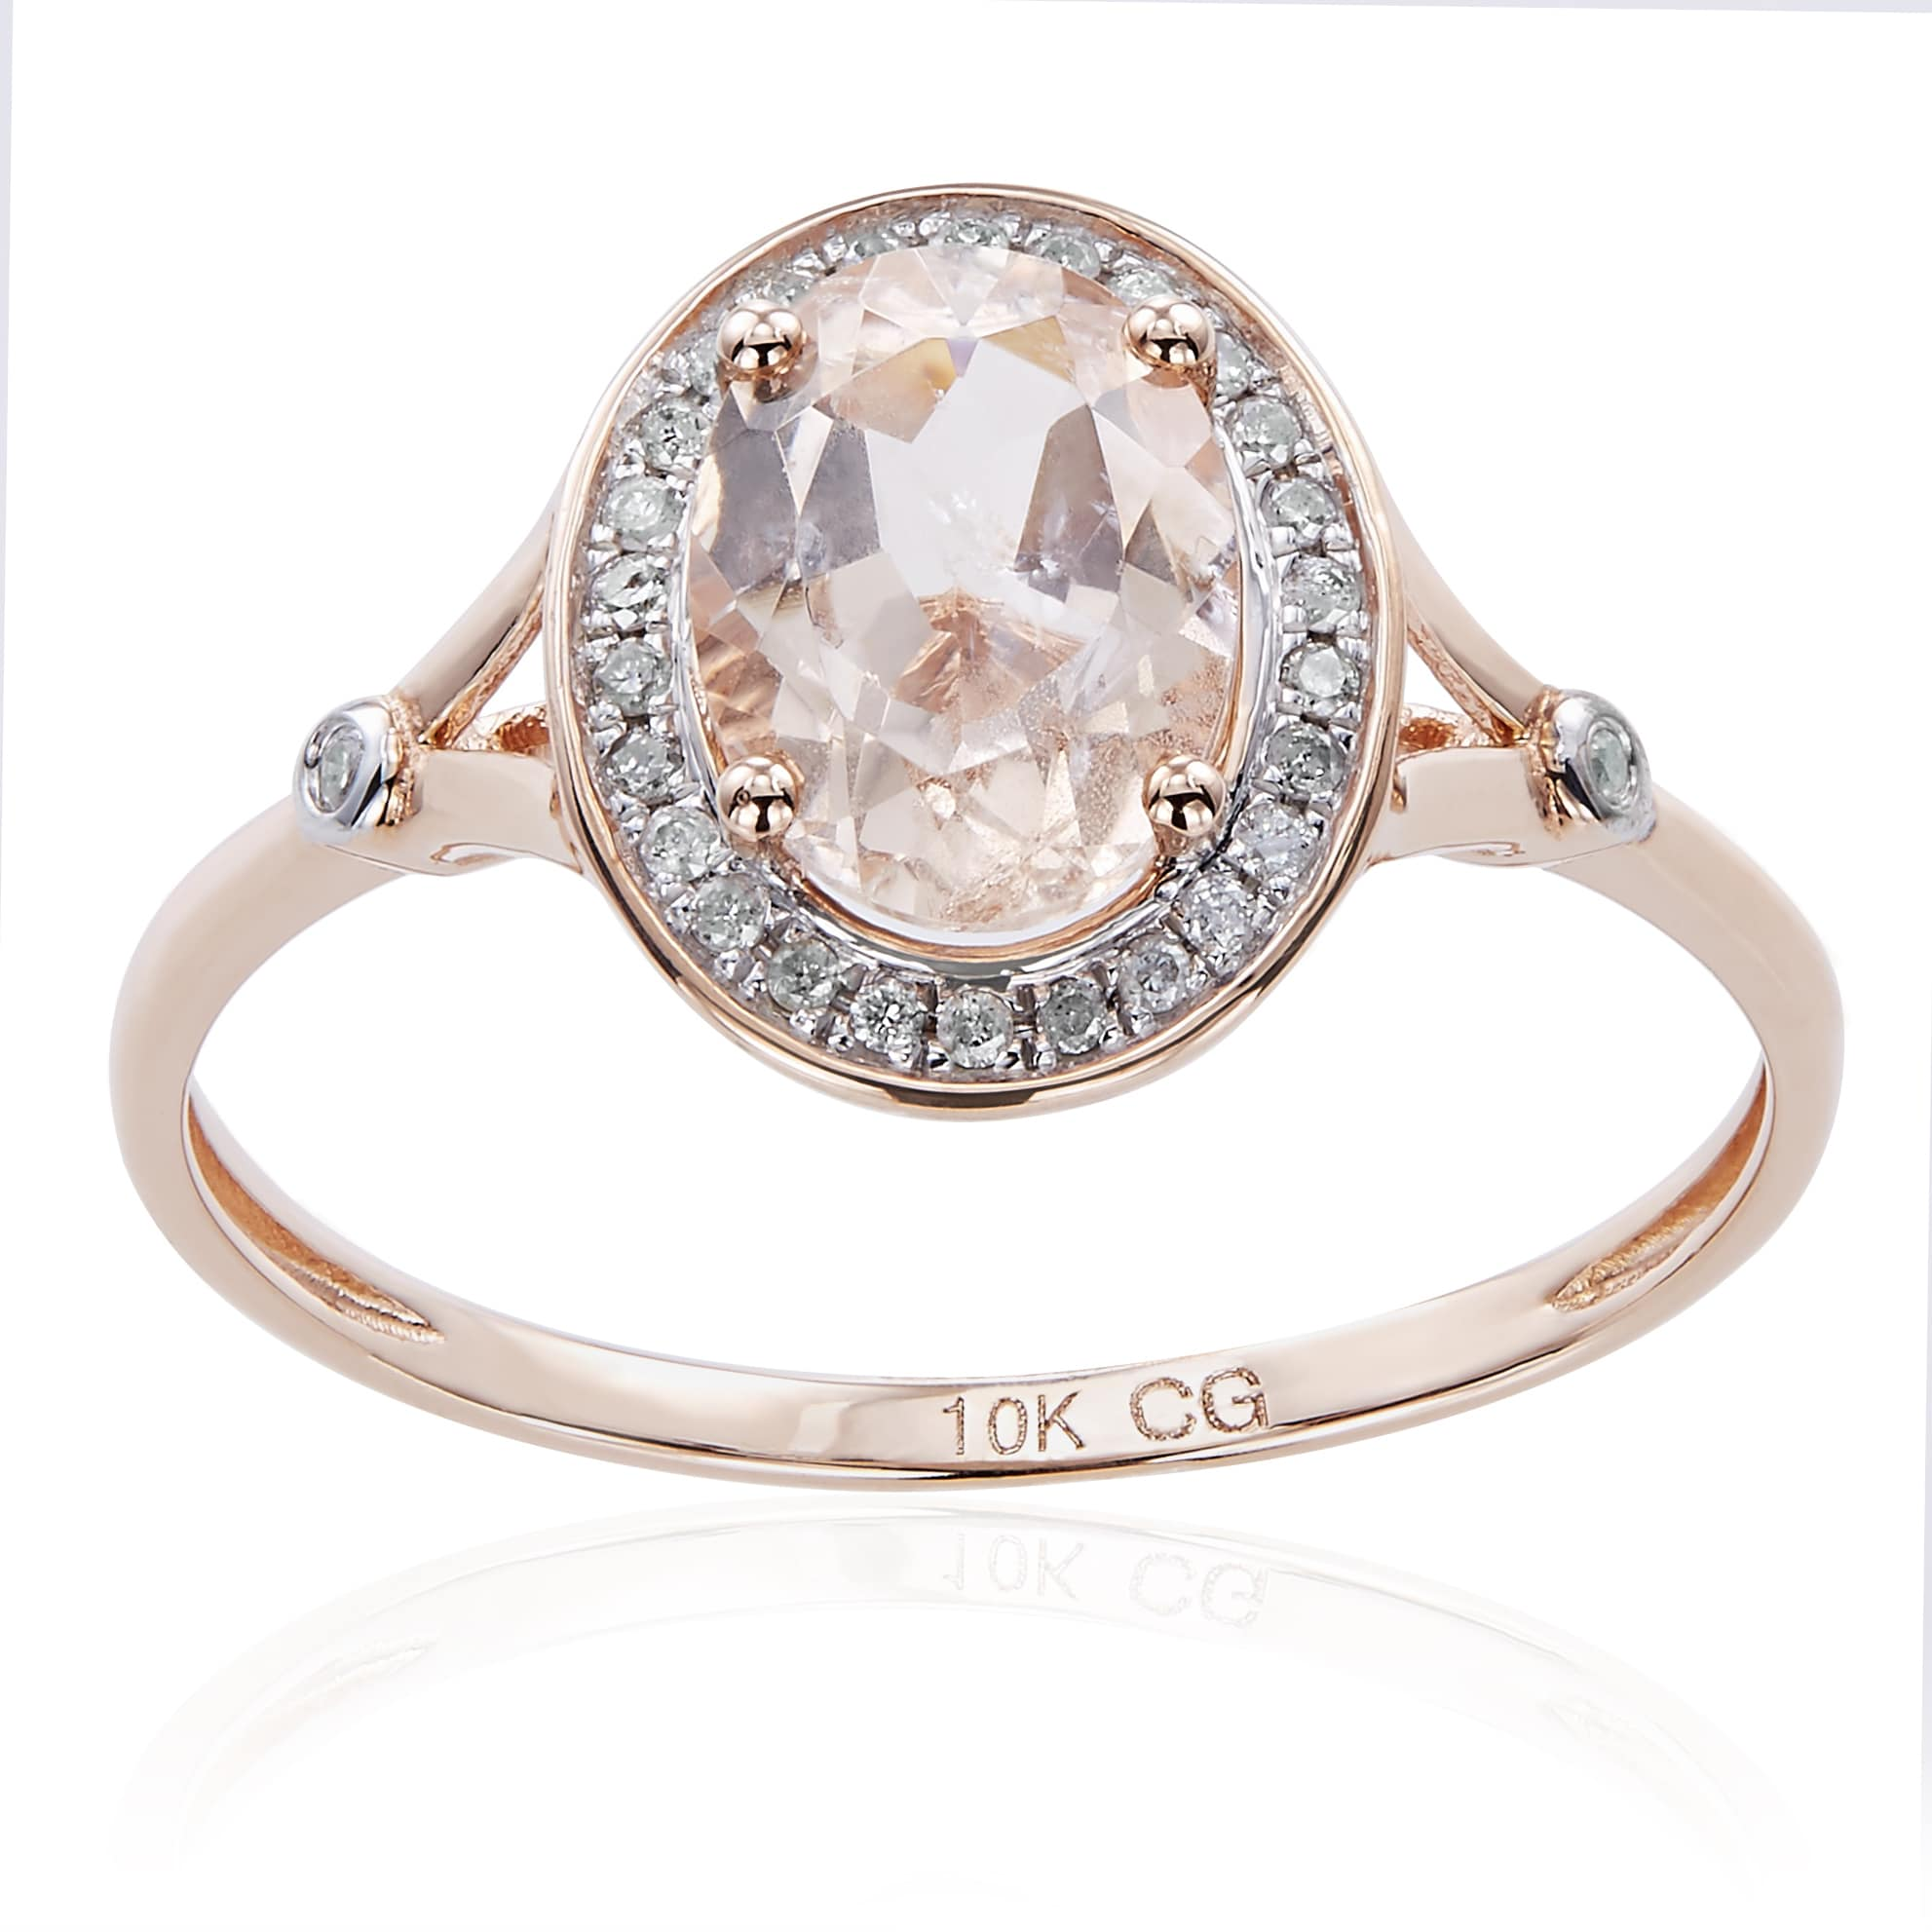 Size-8.75 G-H,I2-I3 Diamond Wedding Band in 14K Pink Gold 1//10 cttw,